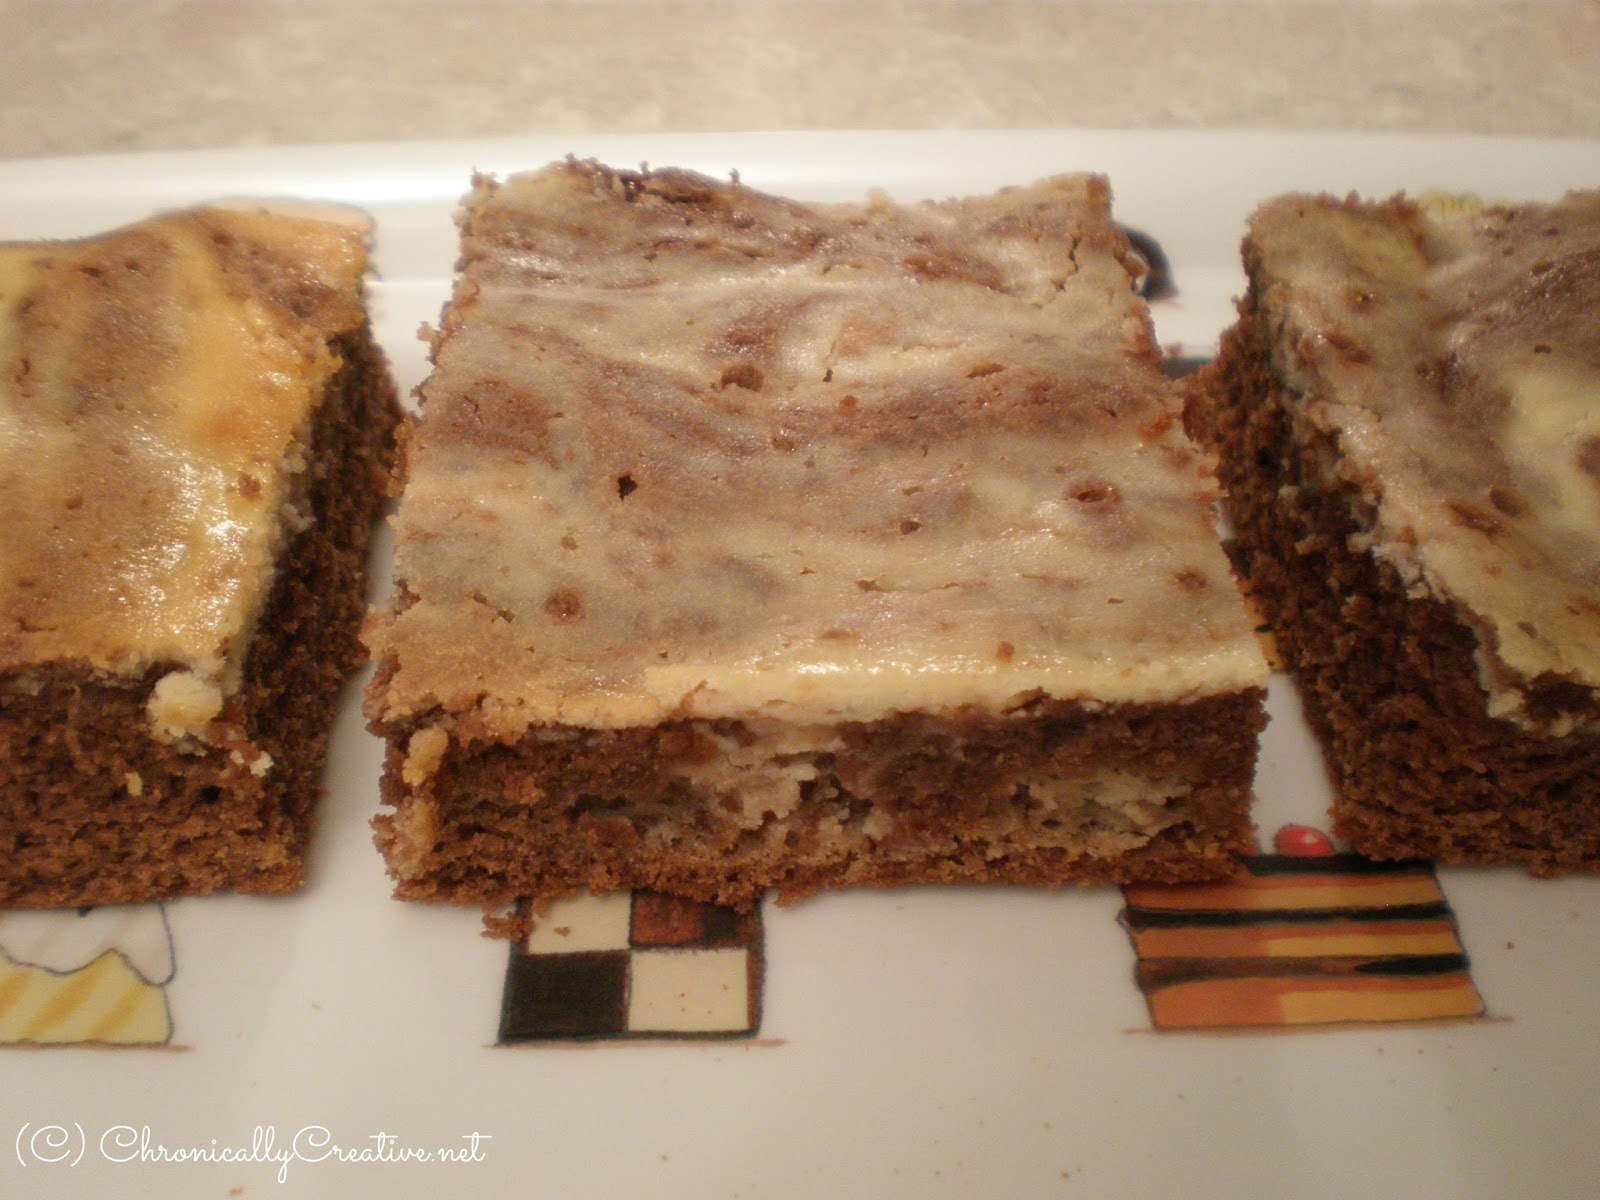 But it was the irresistible picture of the brownie slice in all of its ...